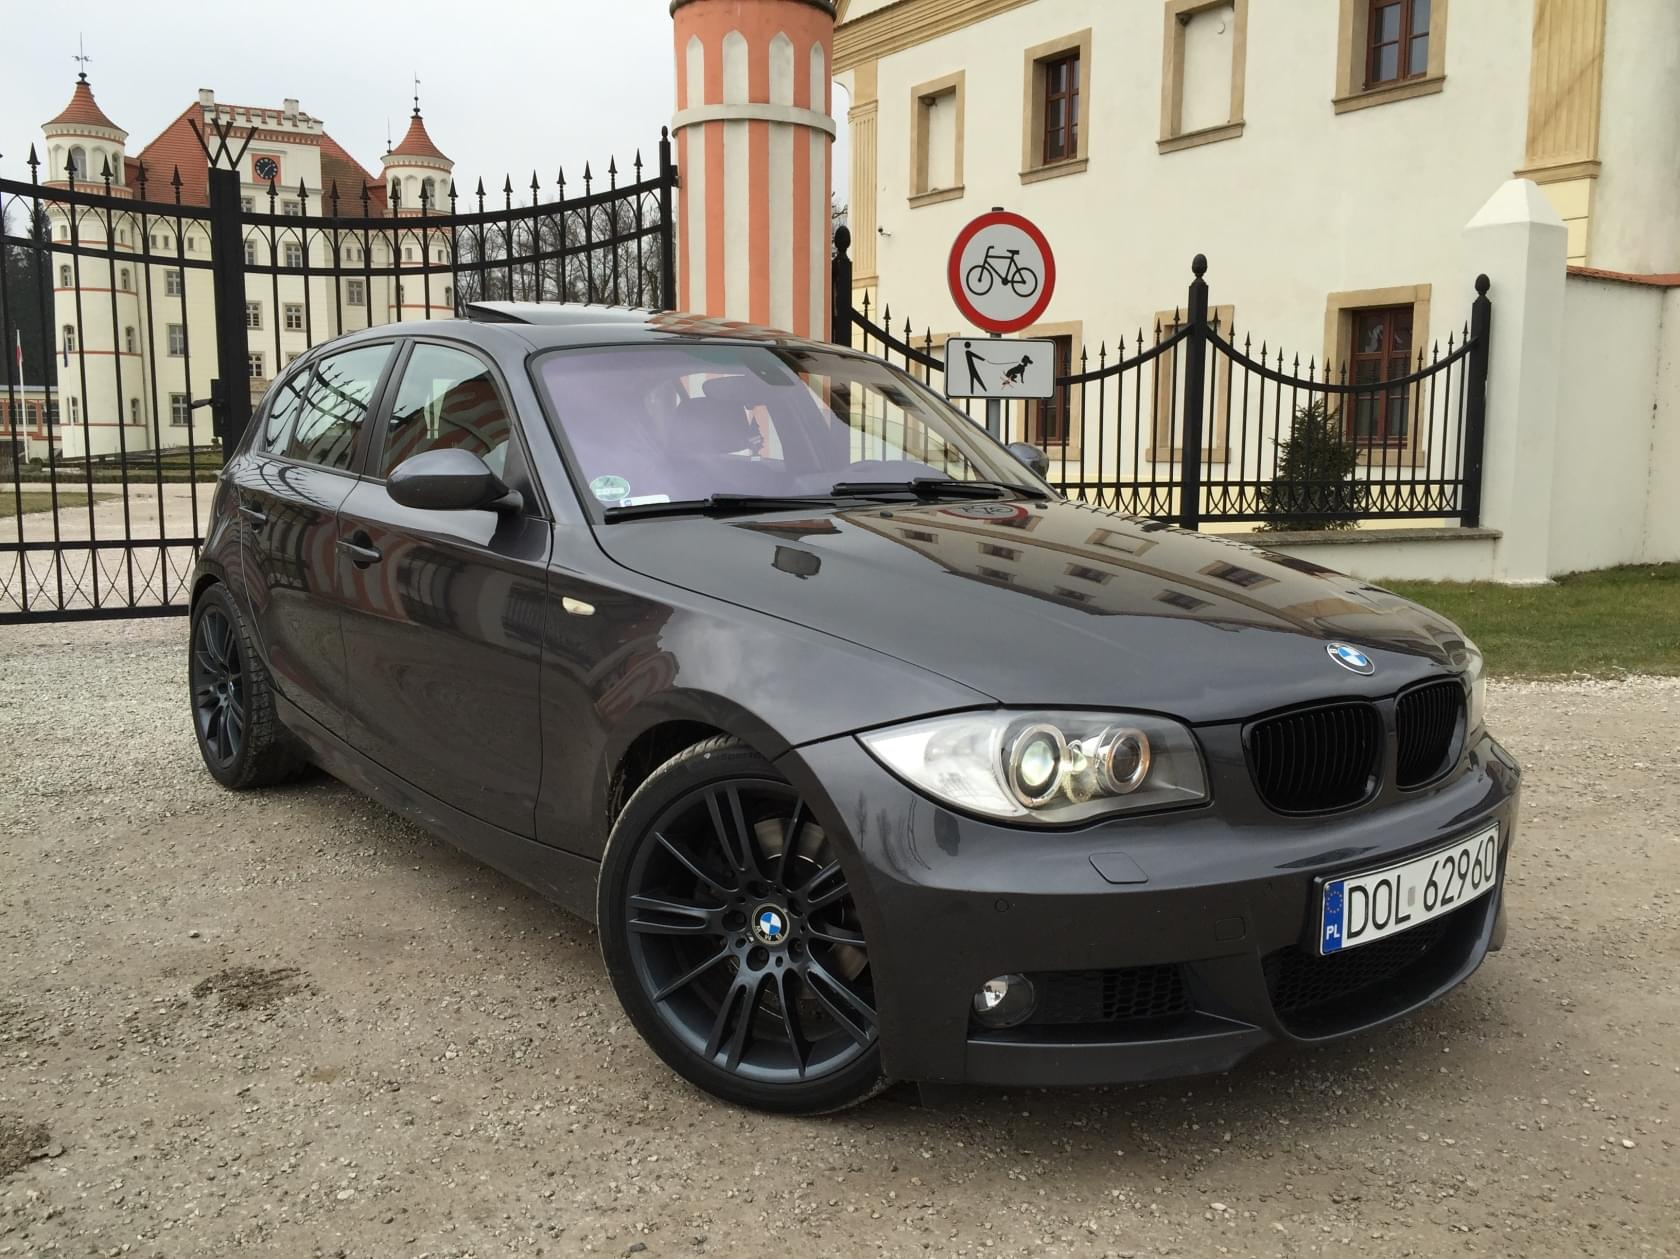 bmw sport zobacz temat kimboax bmw e87 130d swap. Black Bedroom Furniture Sets. Home Design Ideas